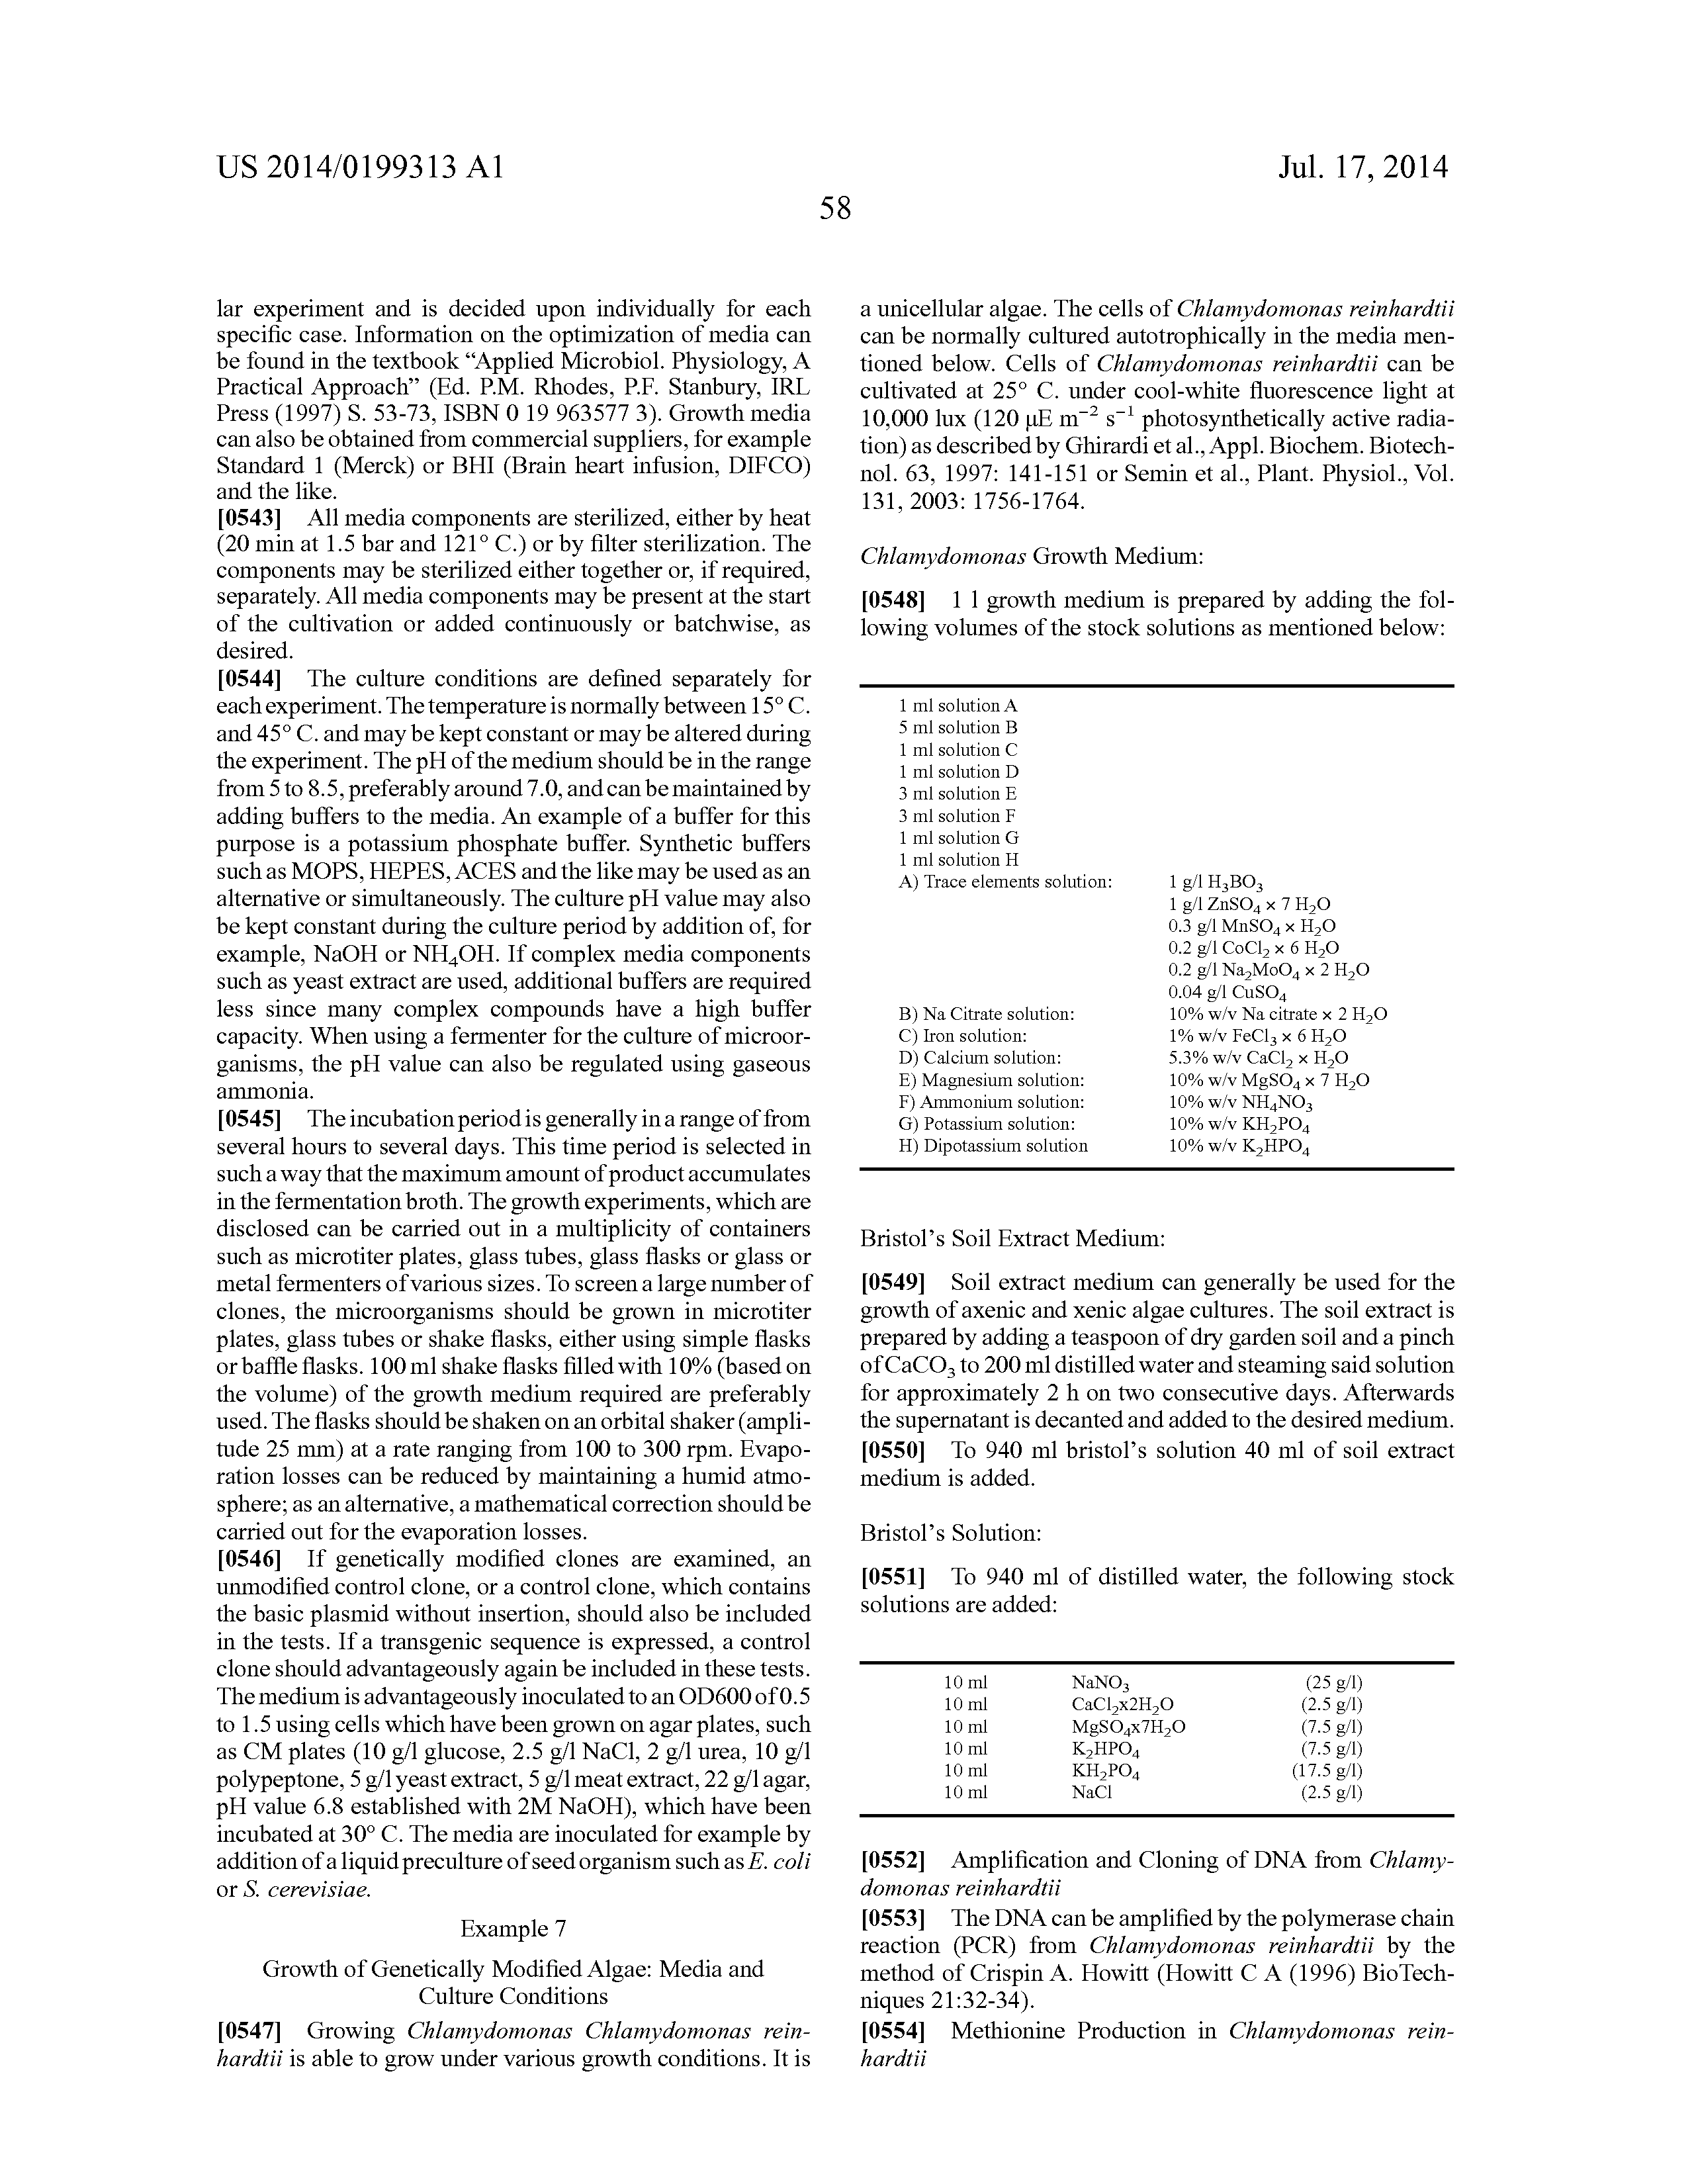 US 2014/0199313 A1 - Process For The Production Of Fine